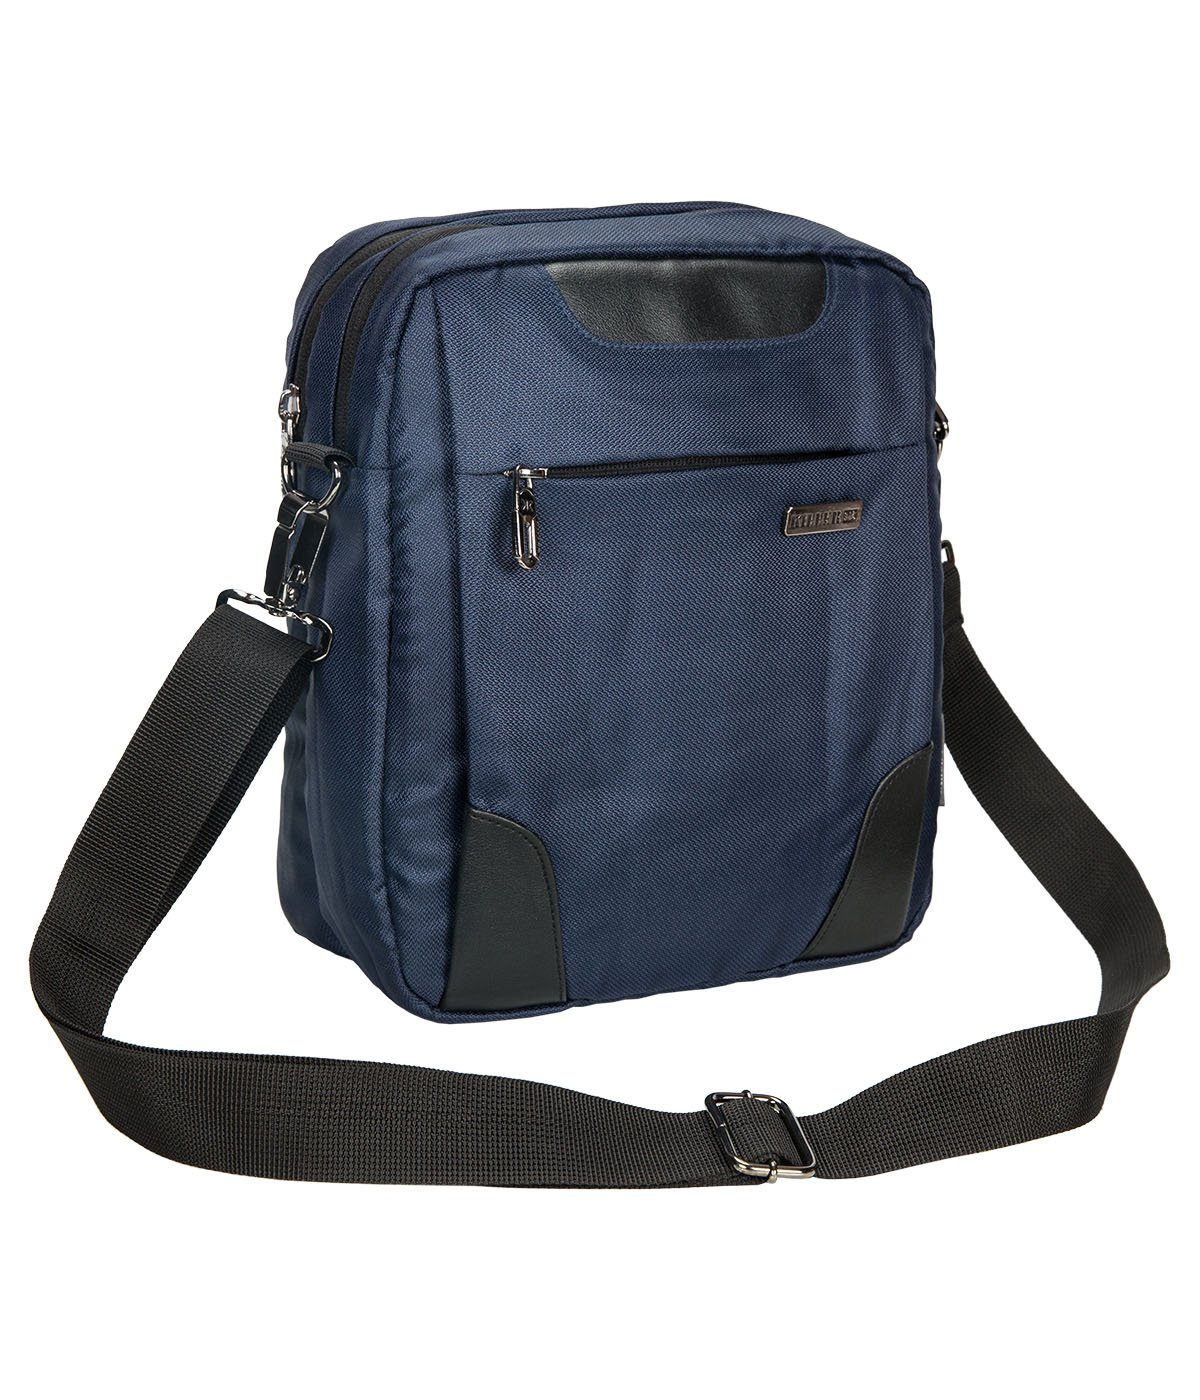 404ed19bdb4b Buy Killer Traviti Casual Travel Sling Bag - Premium quality Shoulder  Messenger Bag for Men - Navy Blue Online at Low Prices in India - Amazon.in